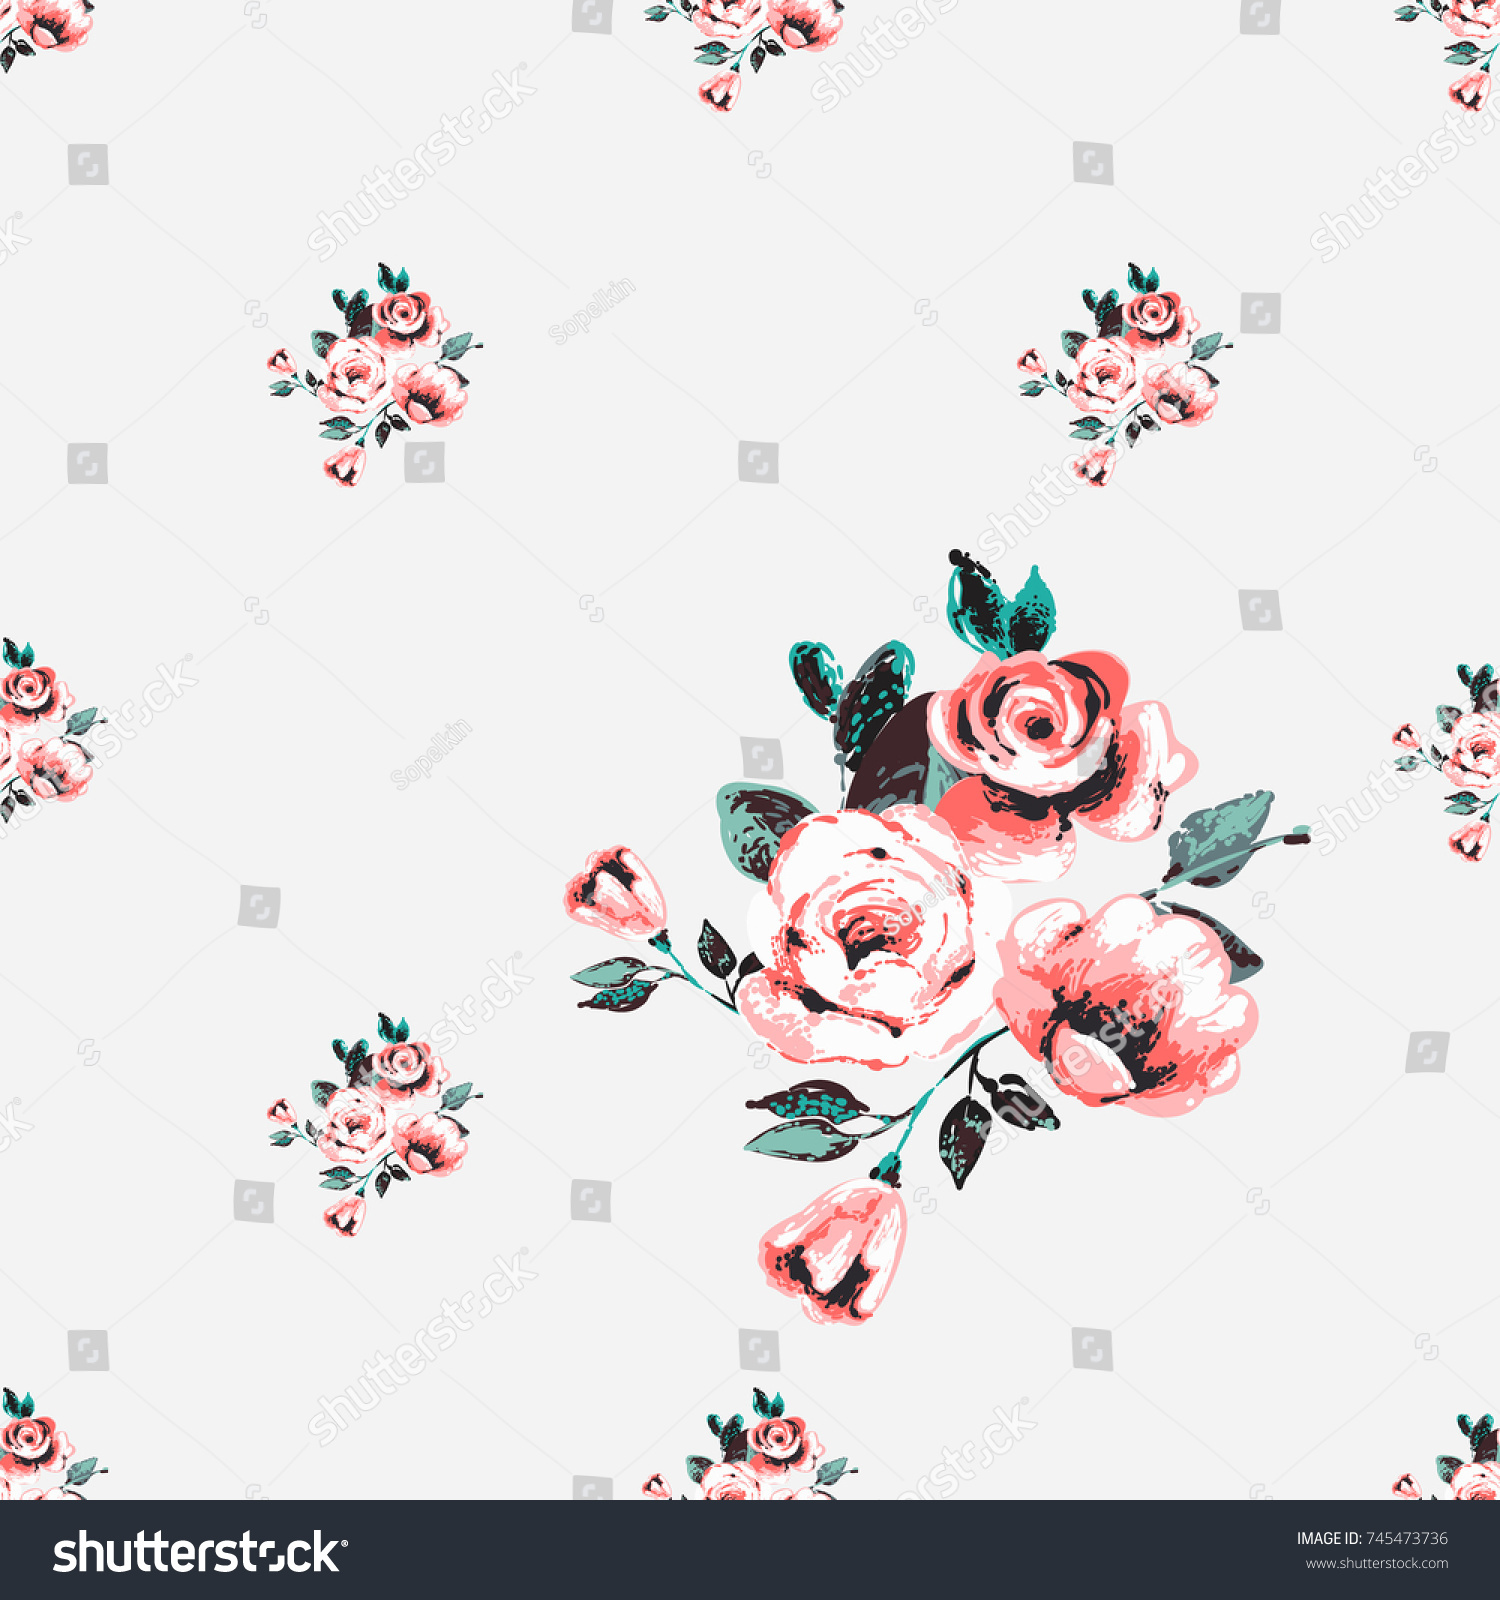 Vintage Traditional Pink Flowers Bouquet Vector Seamless Pattern In